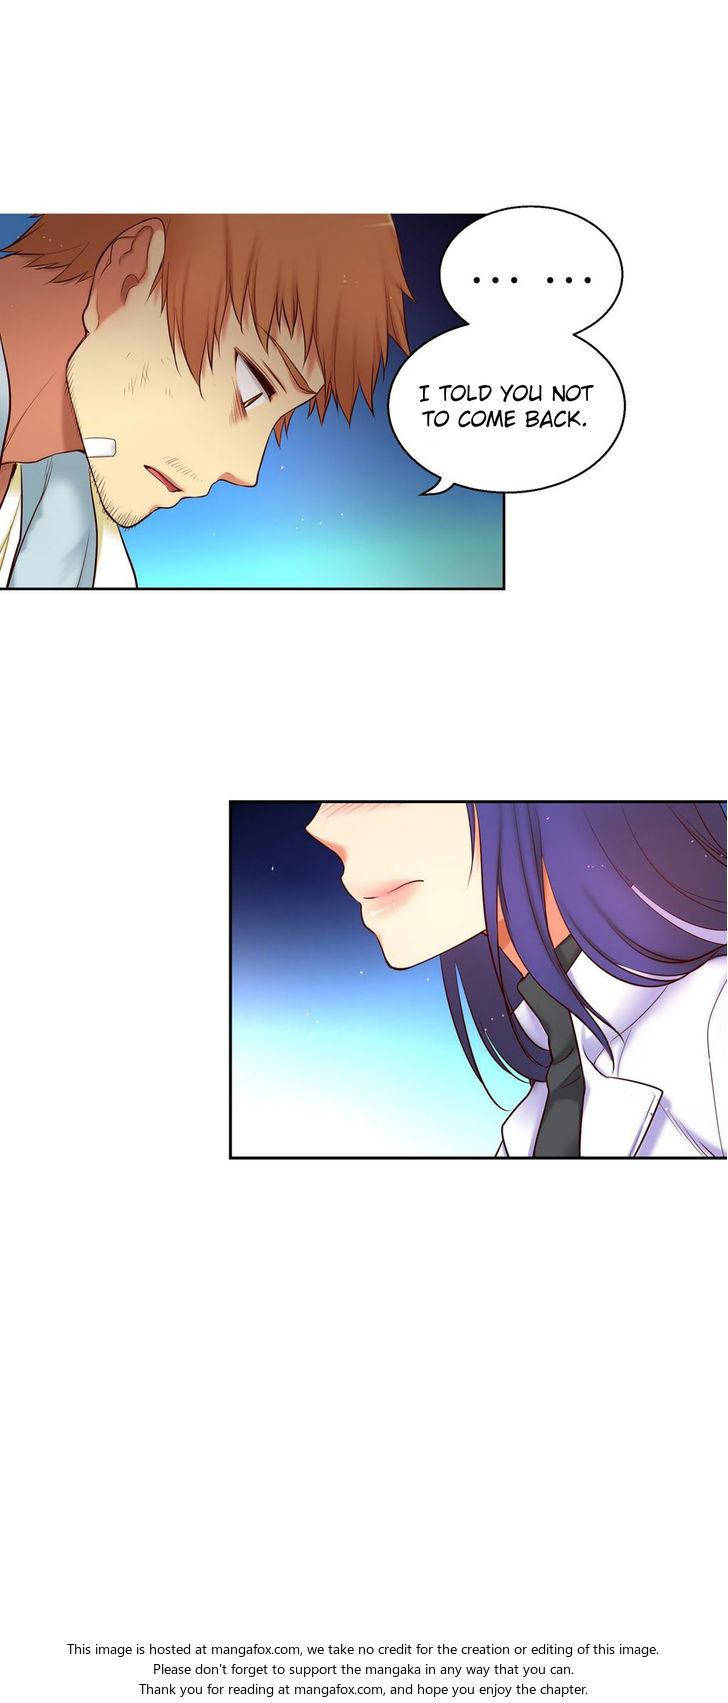 [Donggul Gom] She is Young (English) Part 1/2 1343